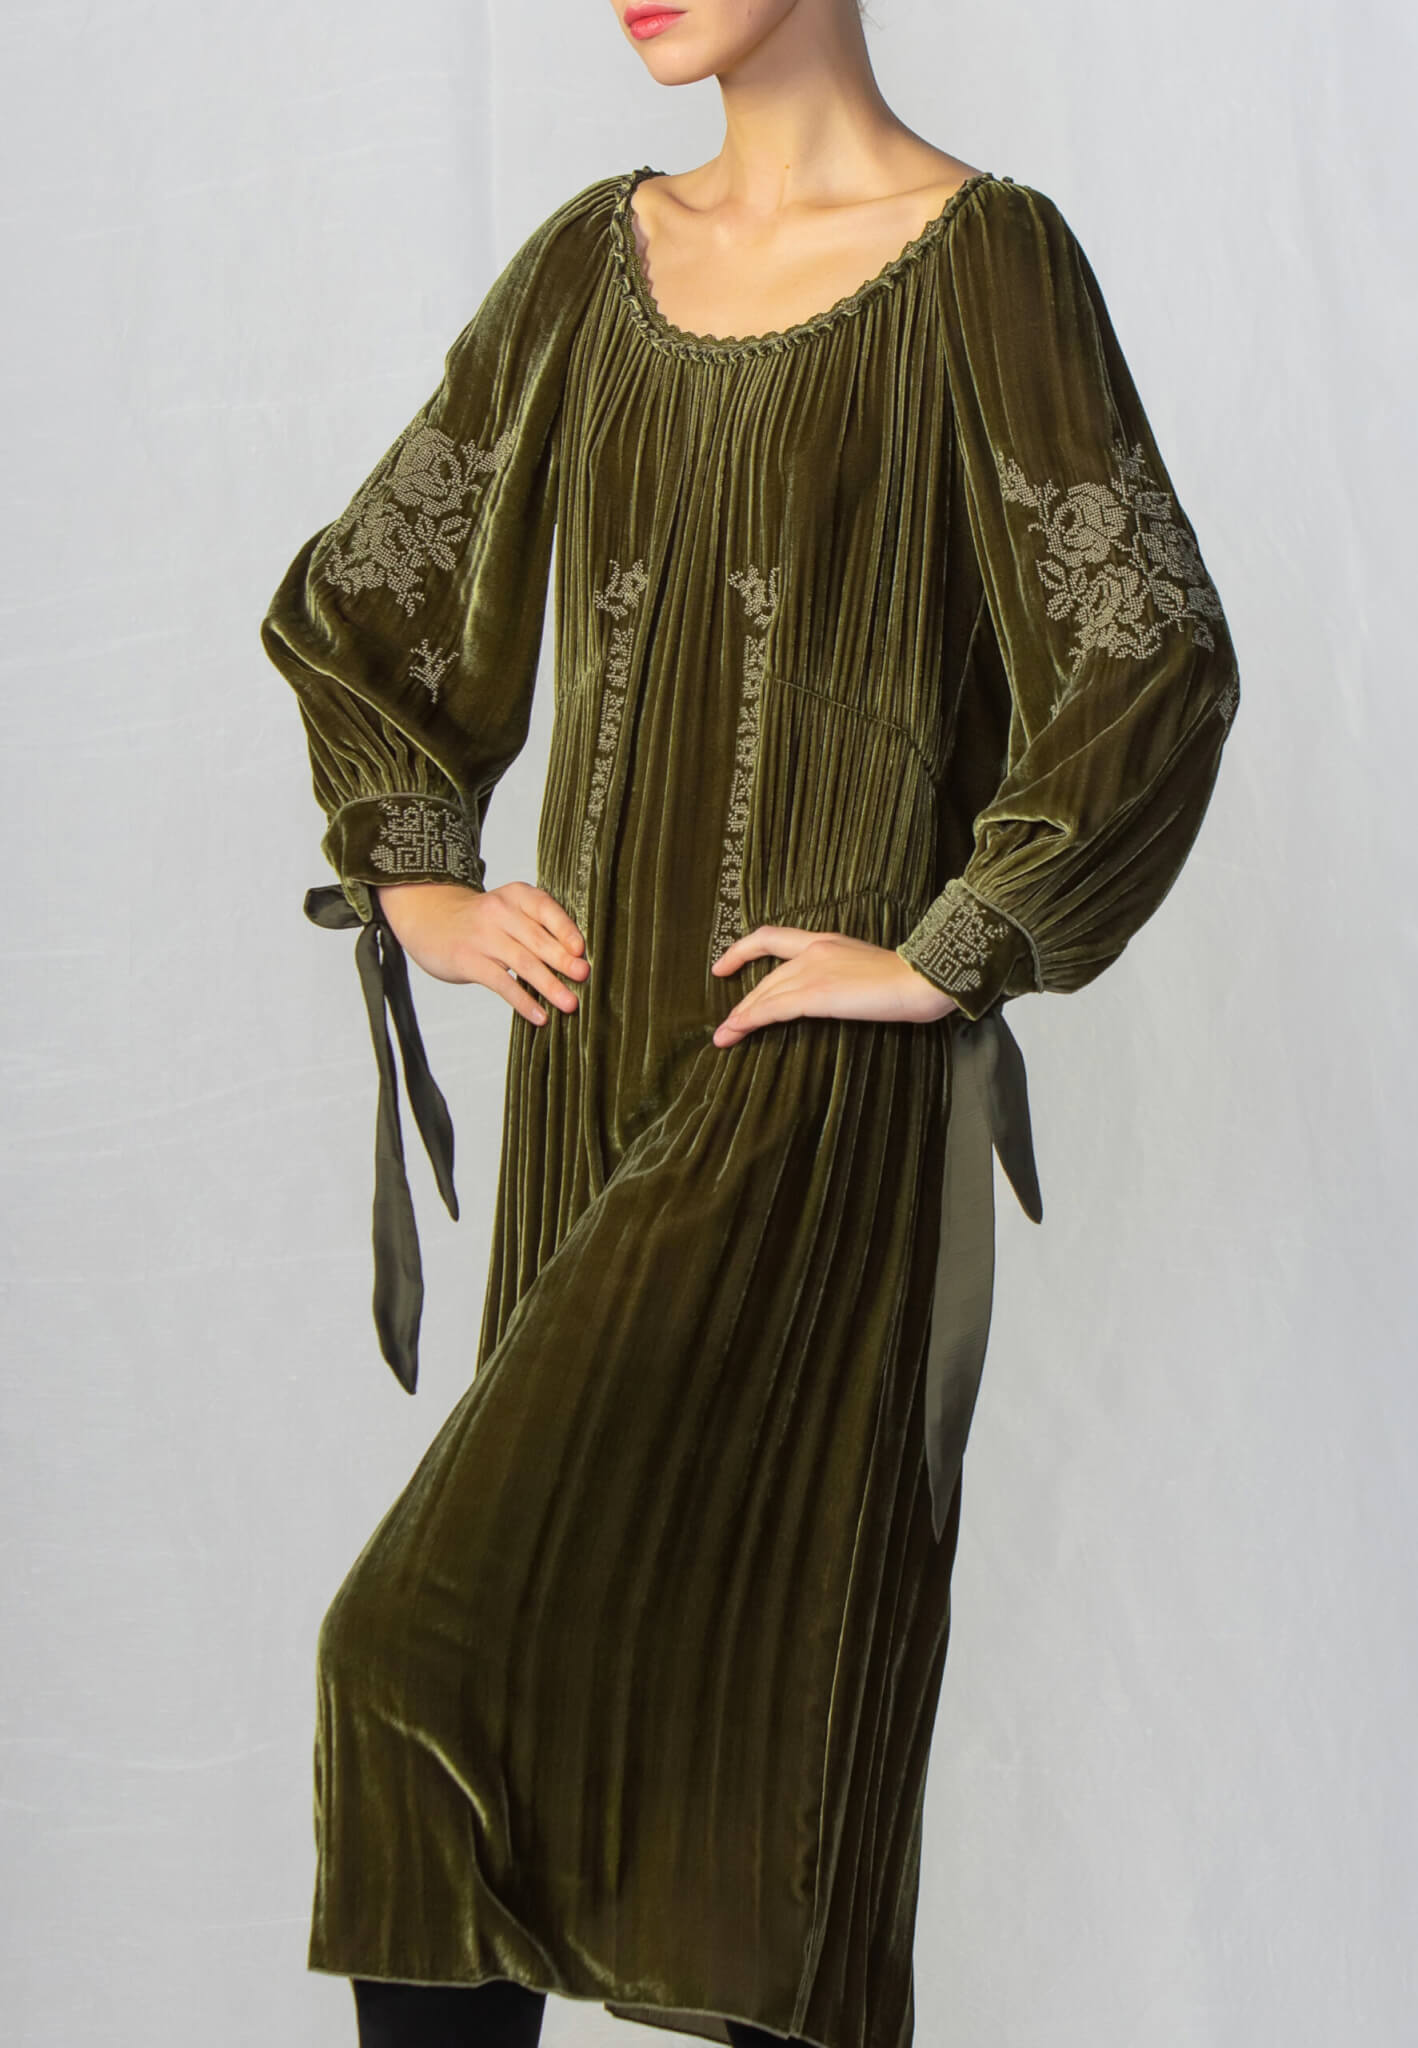 Green velour dress with embroidery